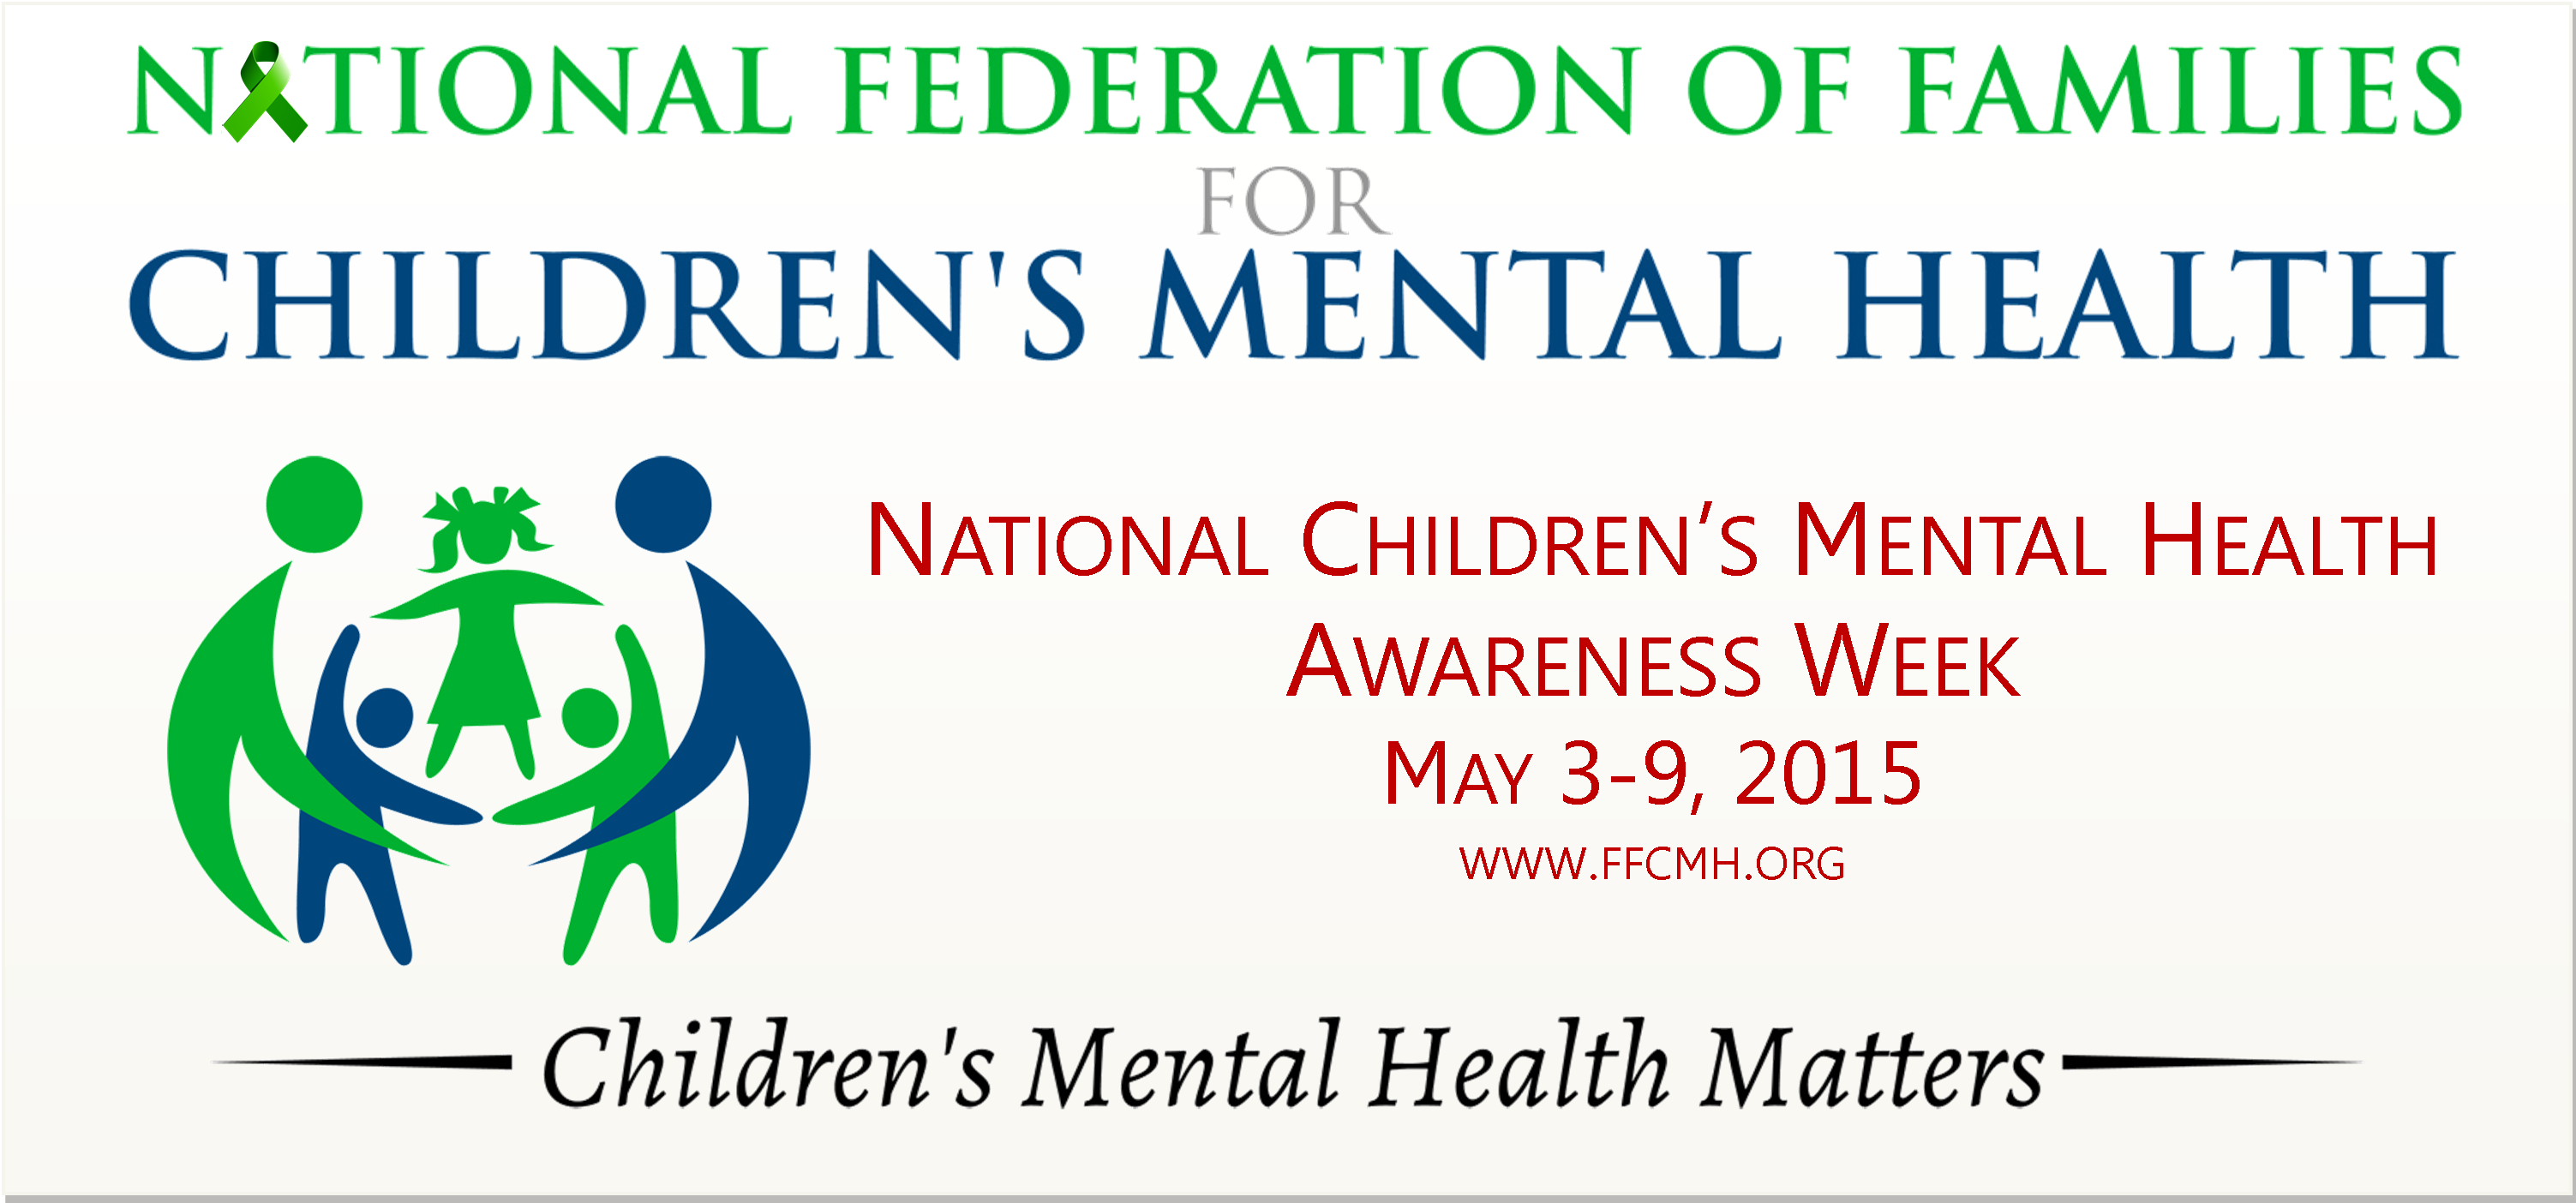 National Federation of Families for Children's Mental Health